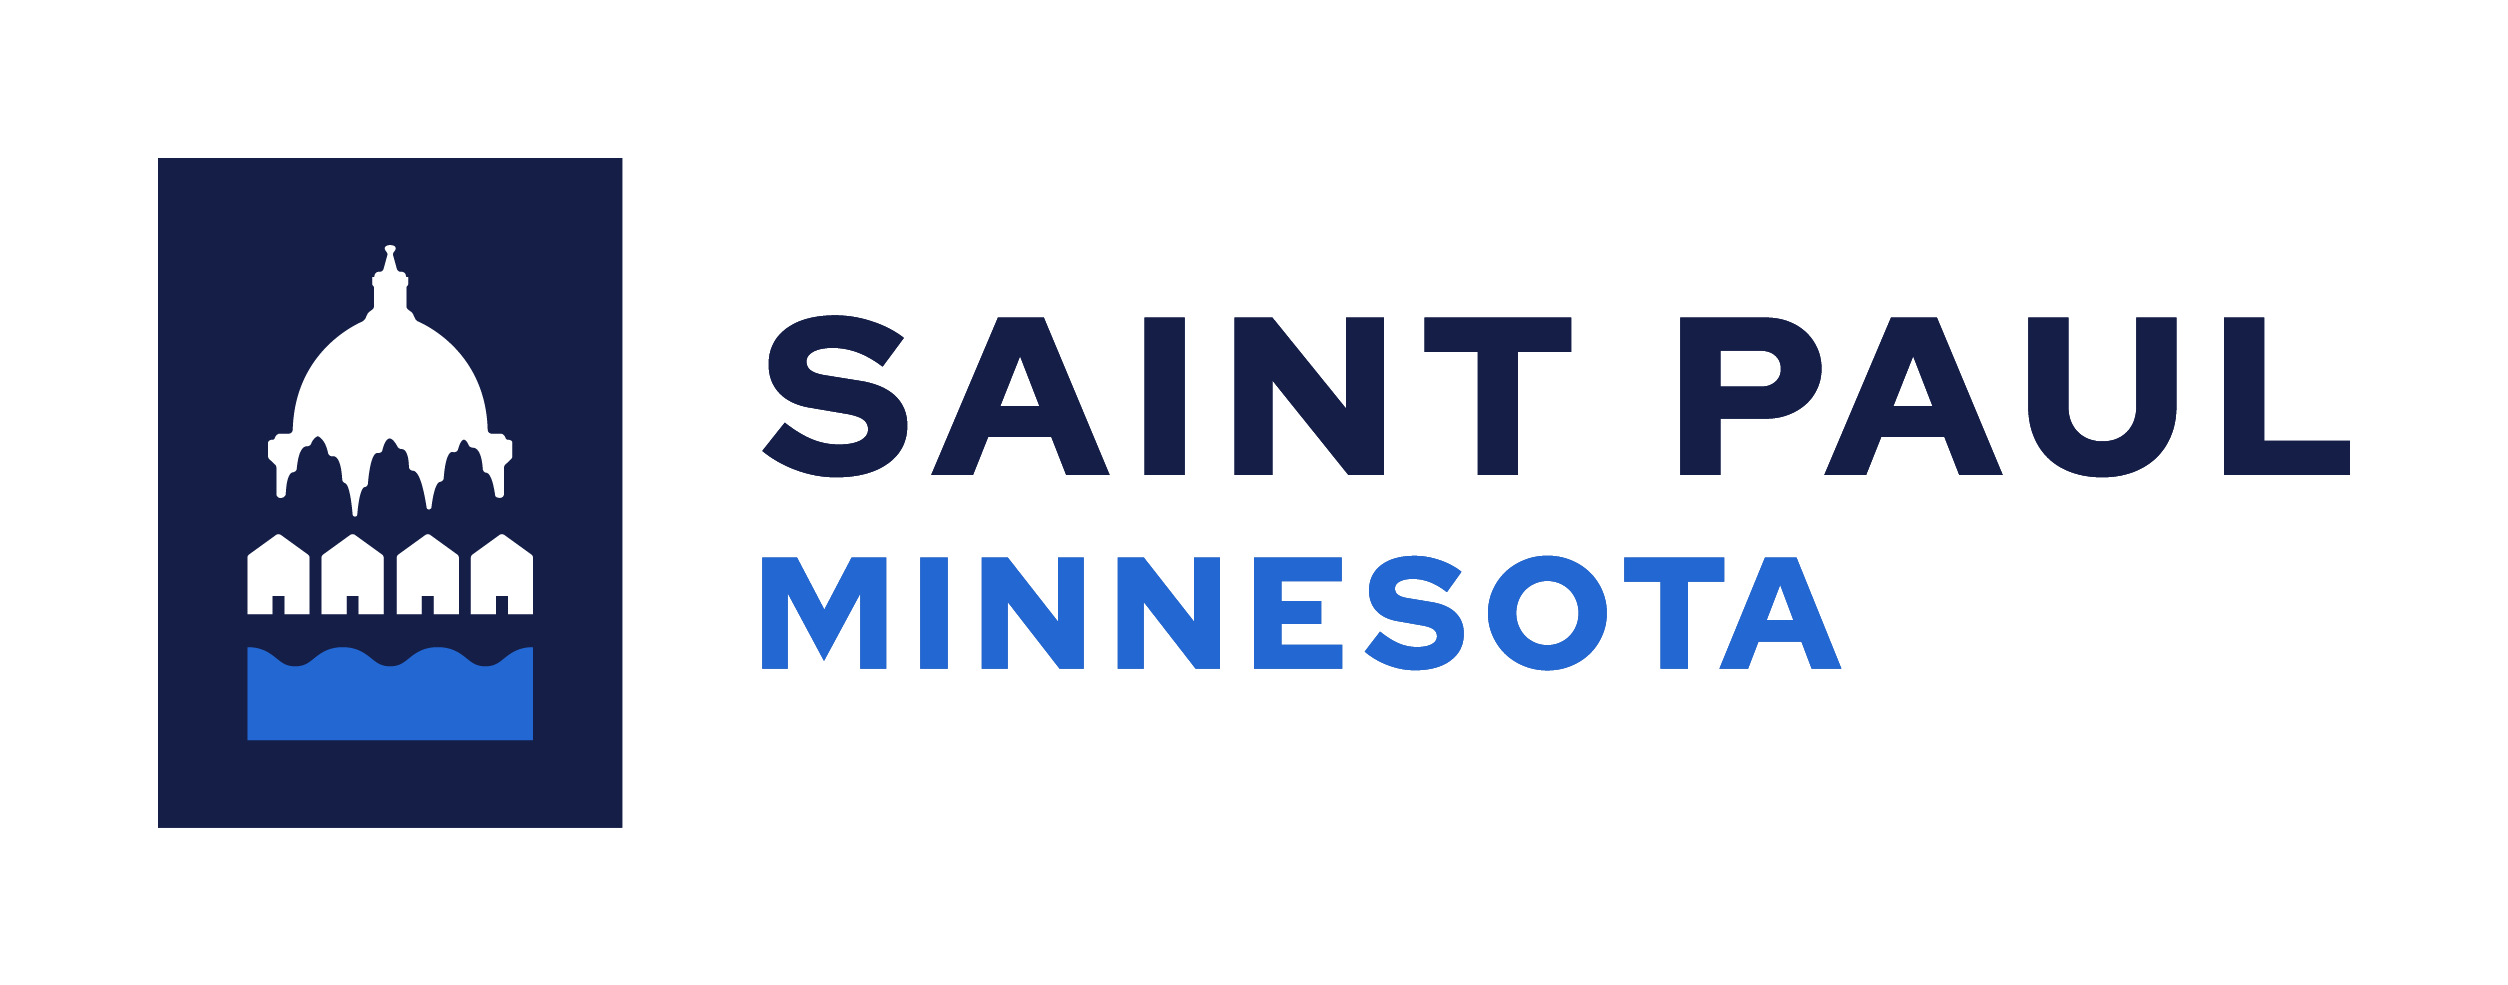 City of Saint Paul